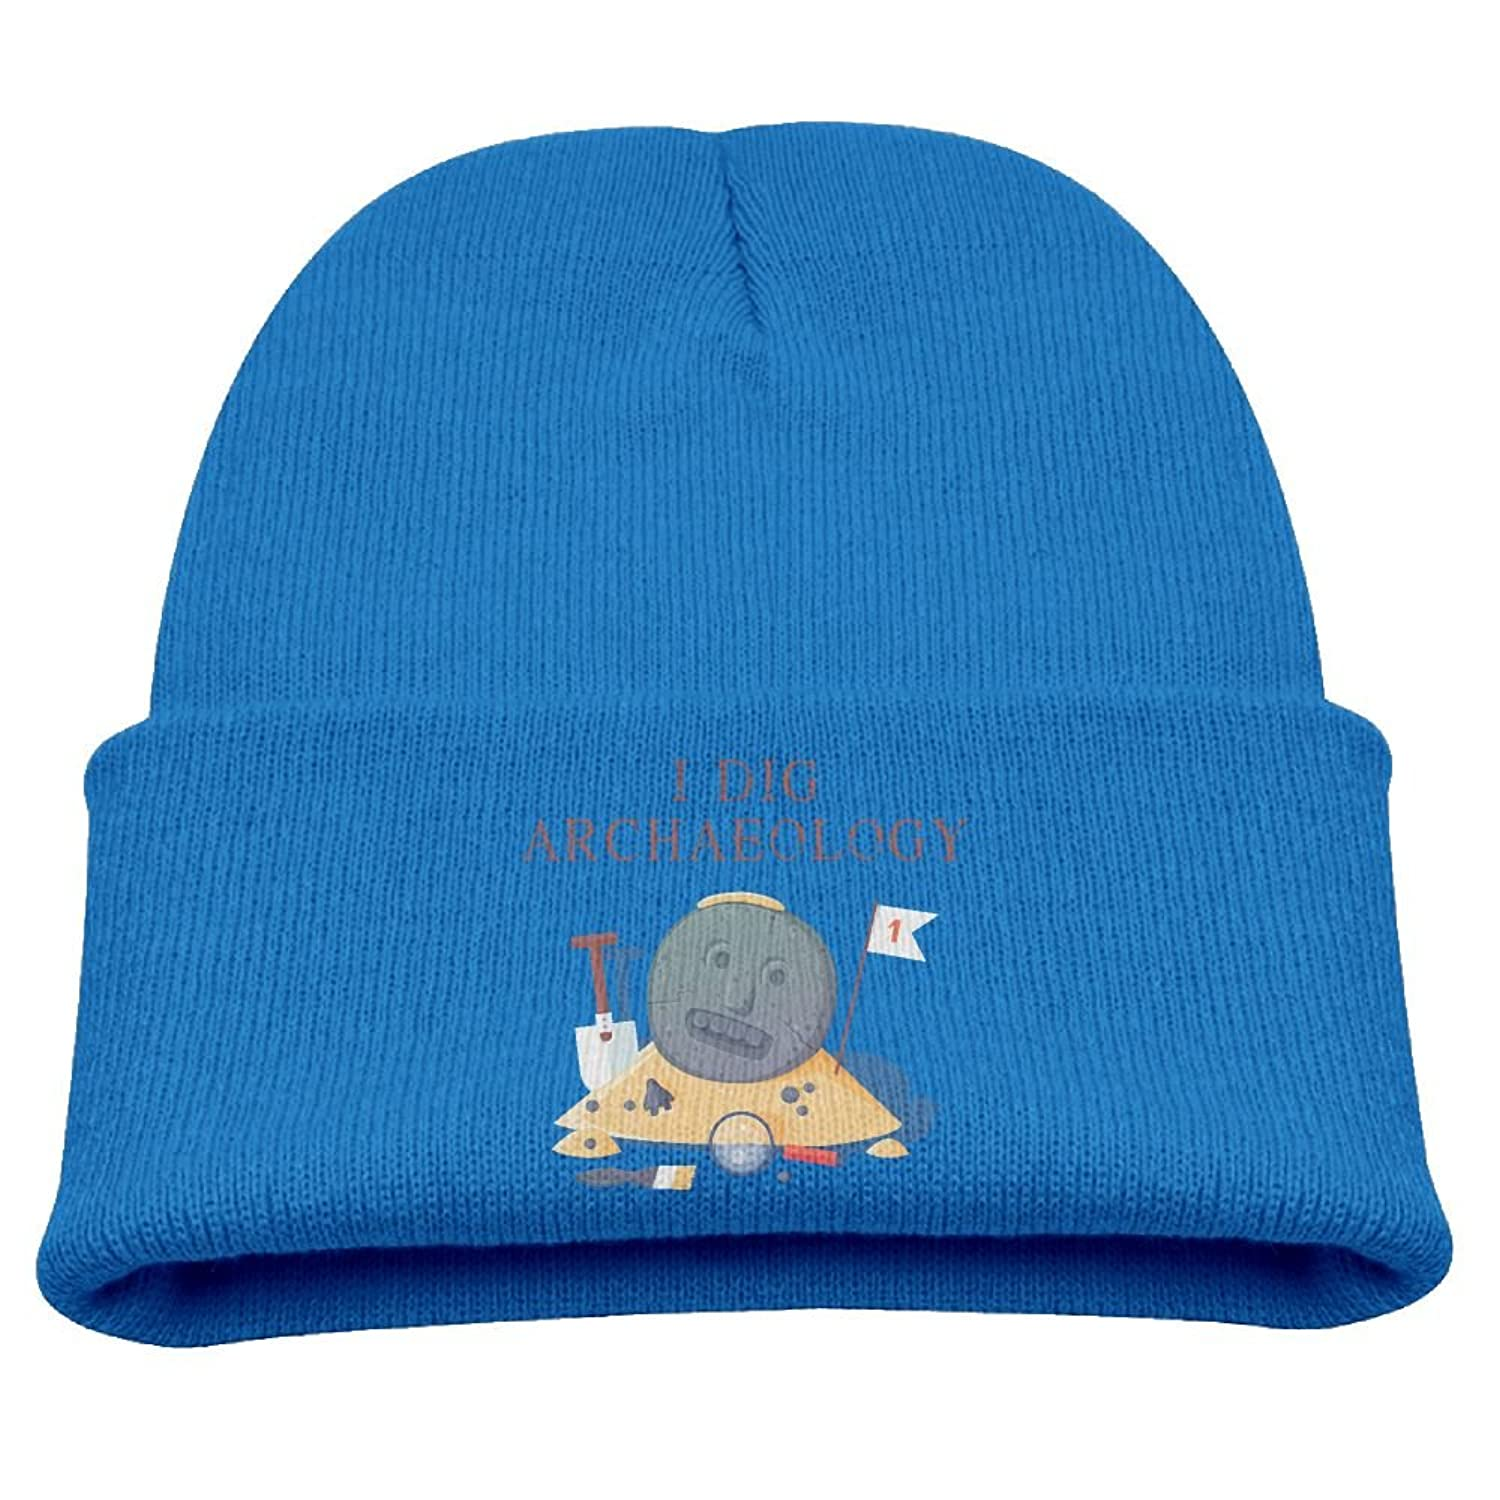 I Dig Archaeology Funny Kid's Beanies Hats Soft Skull Caps get discount